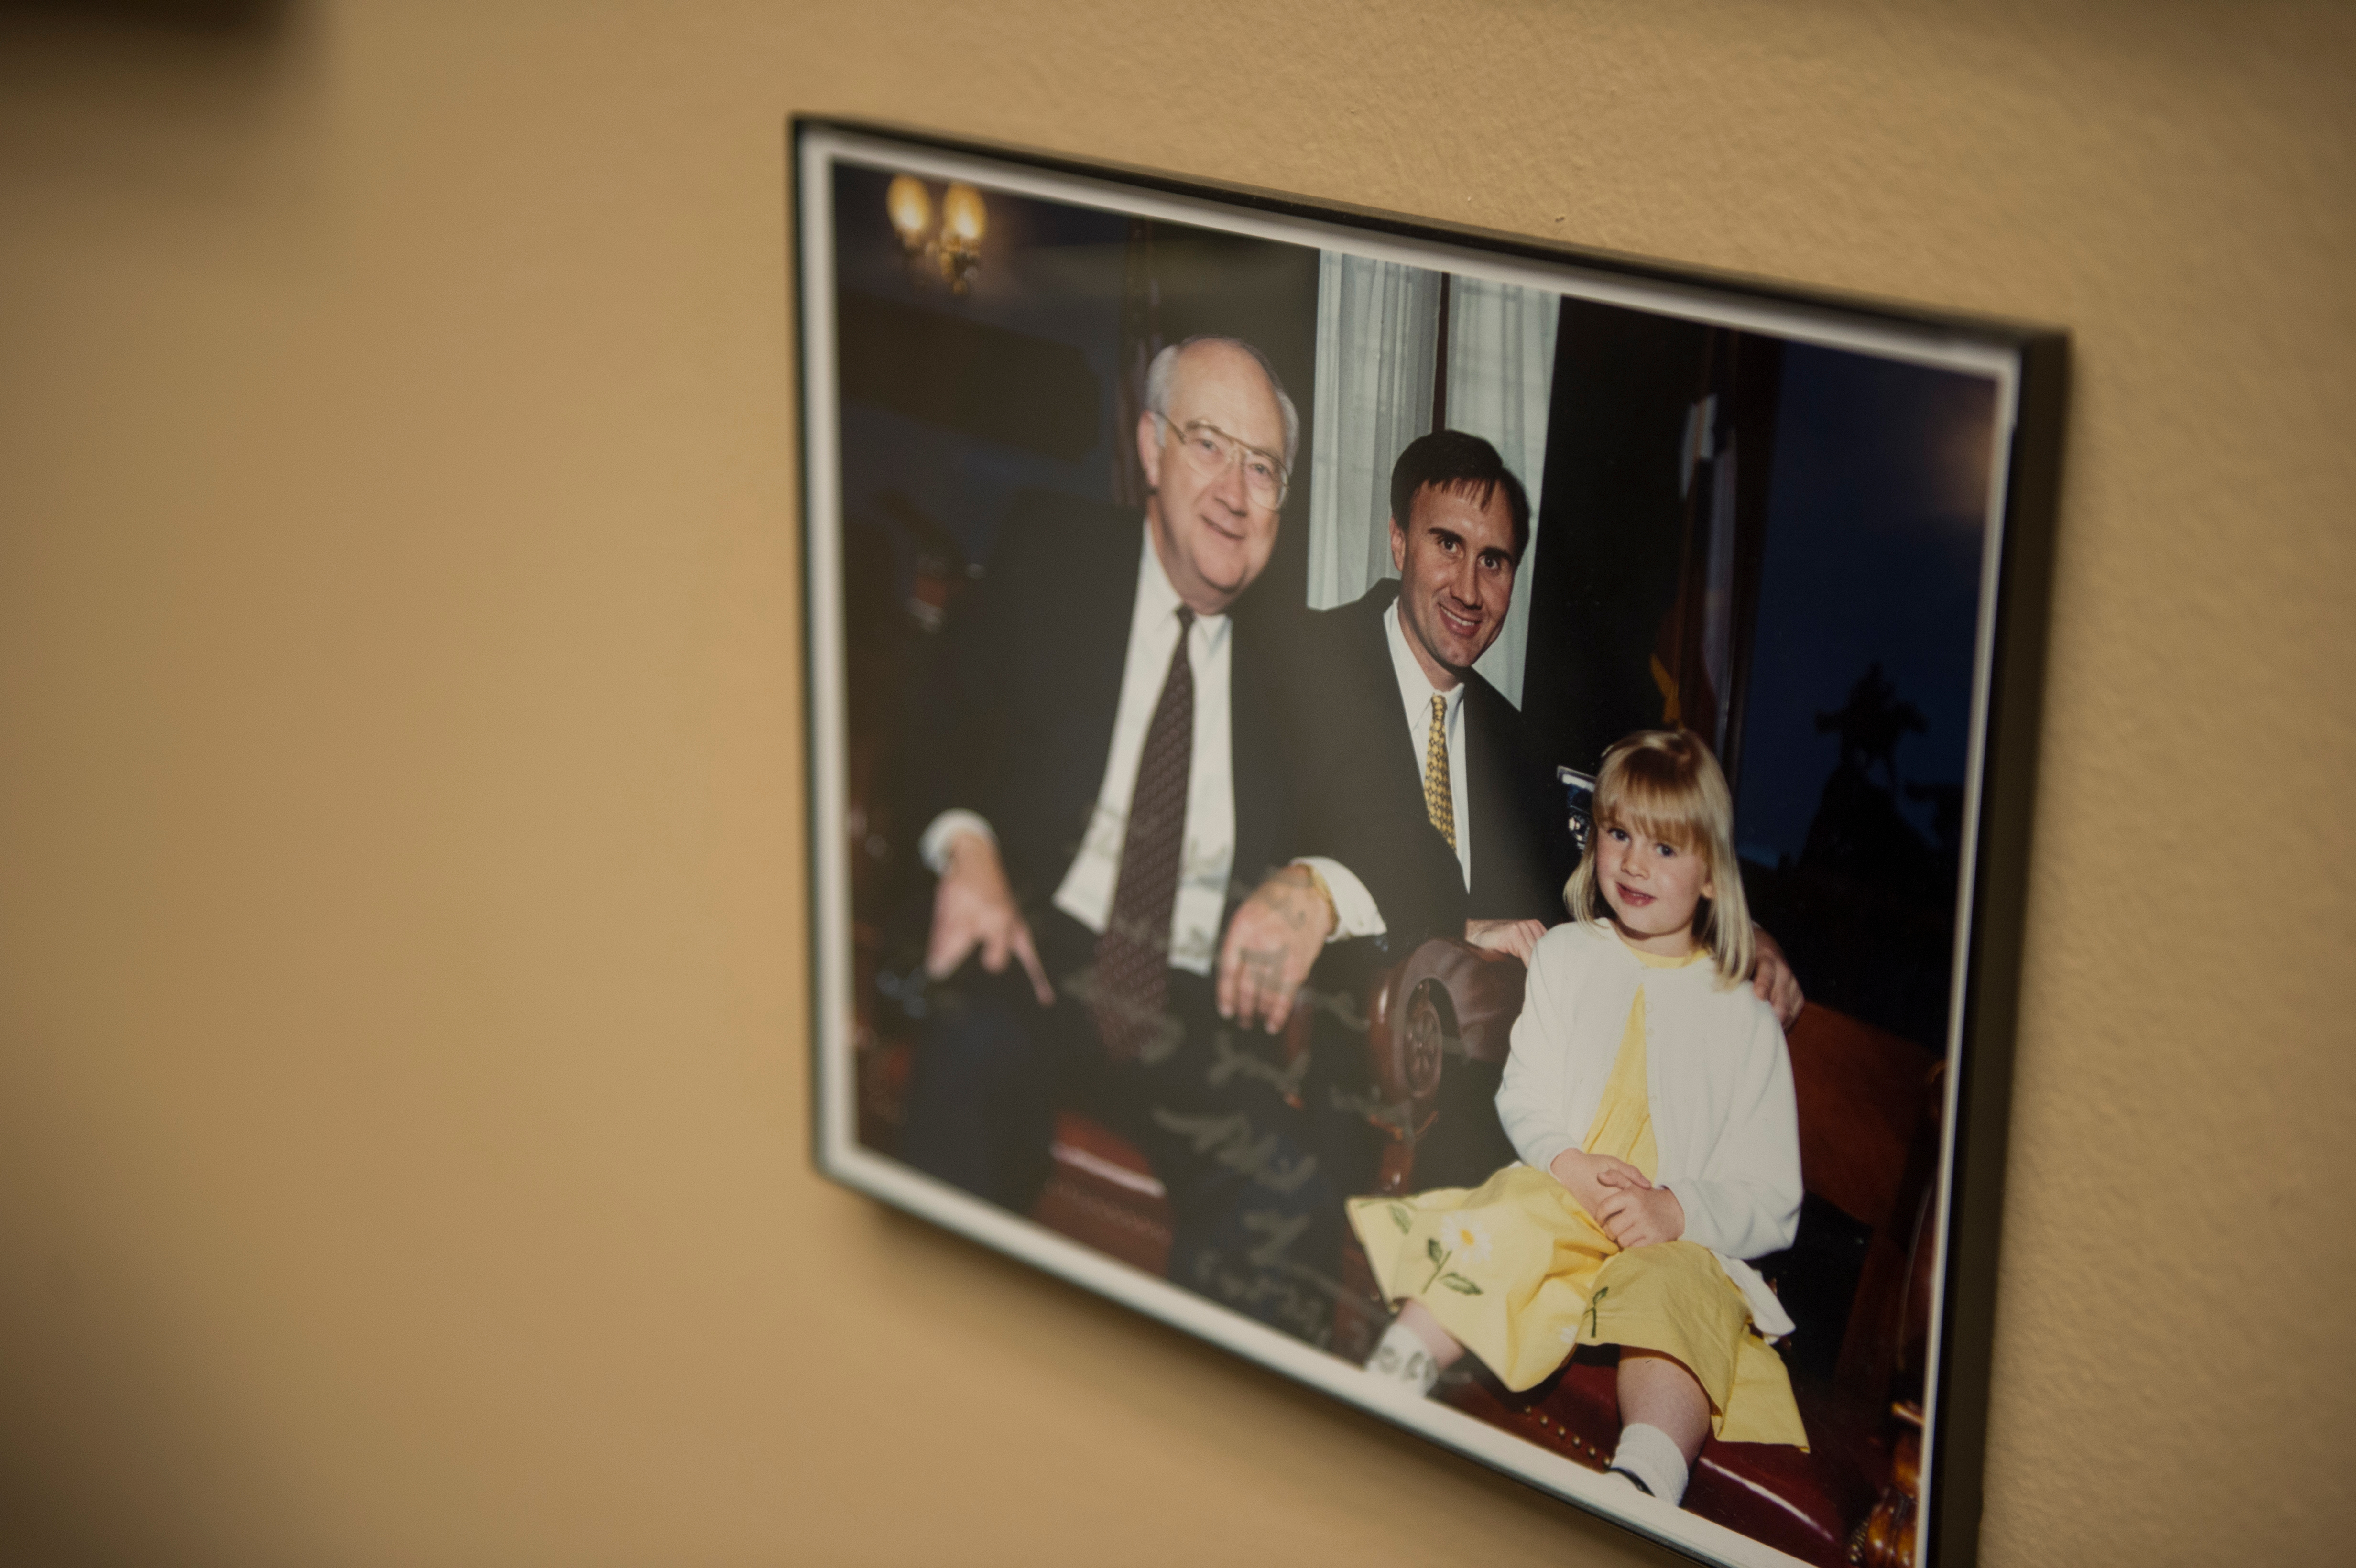 A photo is seen in the office of Rep. Pete Olson, R-Texas, featuring himself, his daughter and former Sen. Phil Gramm, R-Texas, taken in 2000. (Photo By Sarah Silbiger/CQ Roll Call)